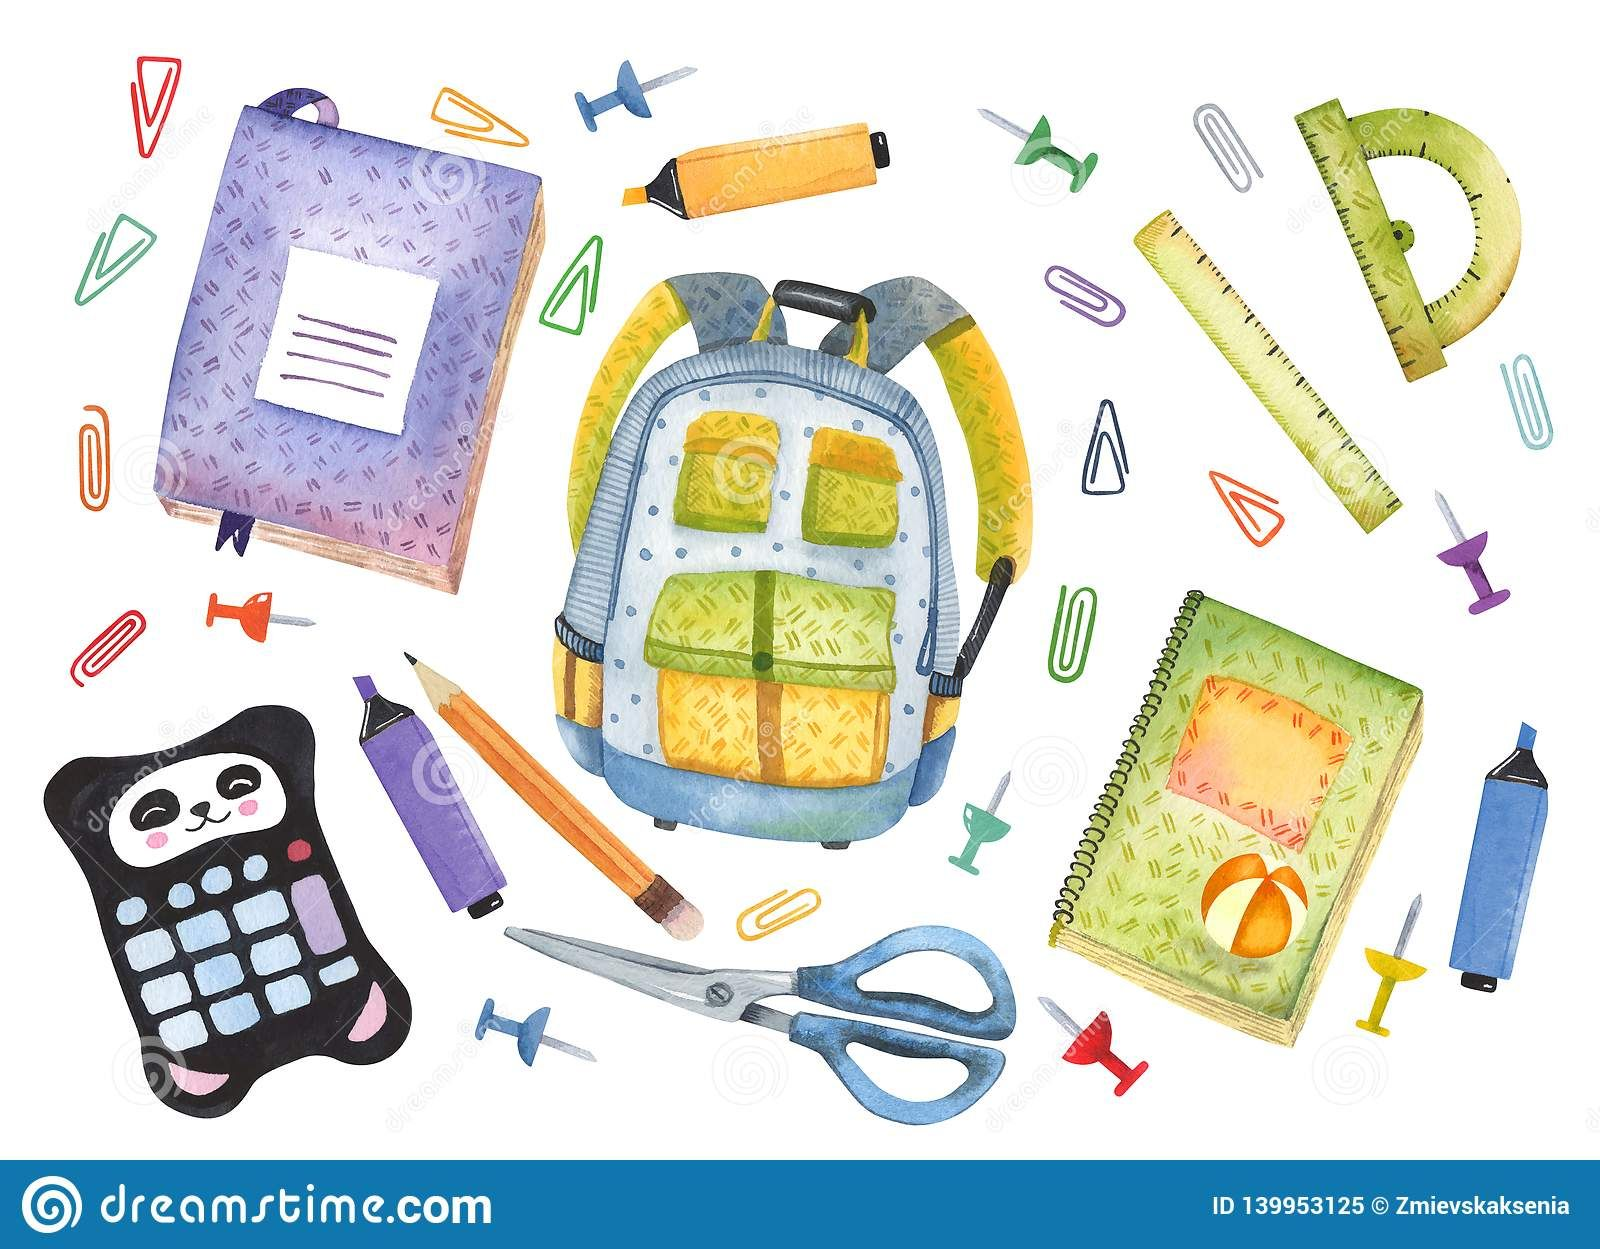 Pin by Dreamstime Stock Photos on Education in 2020